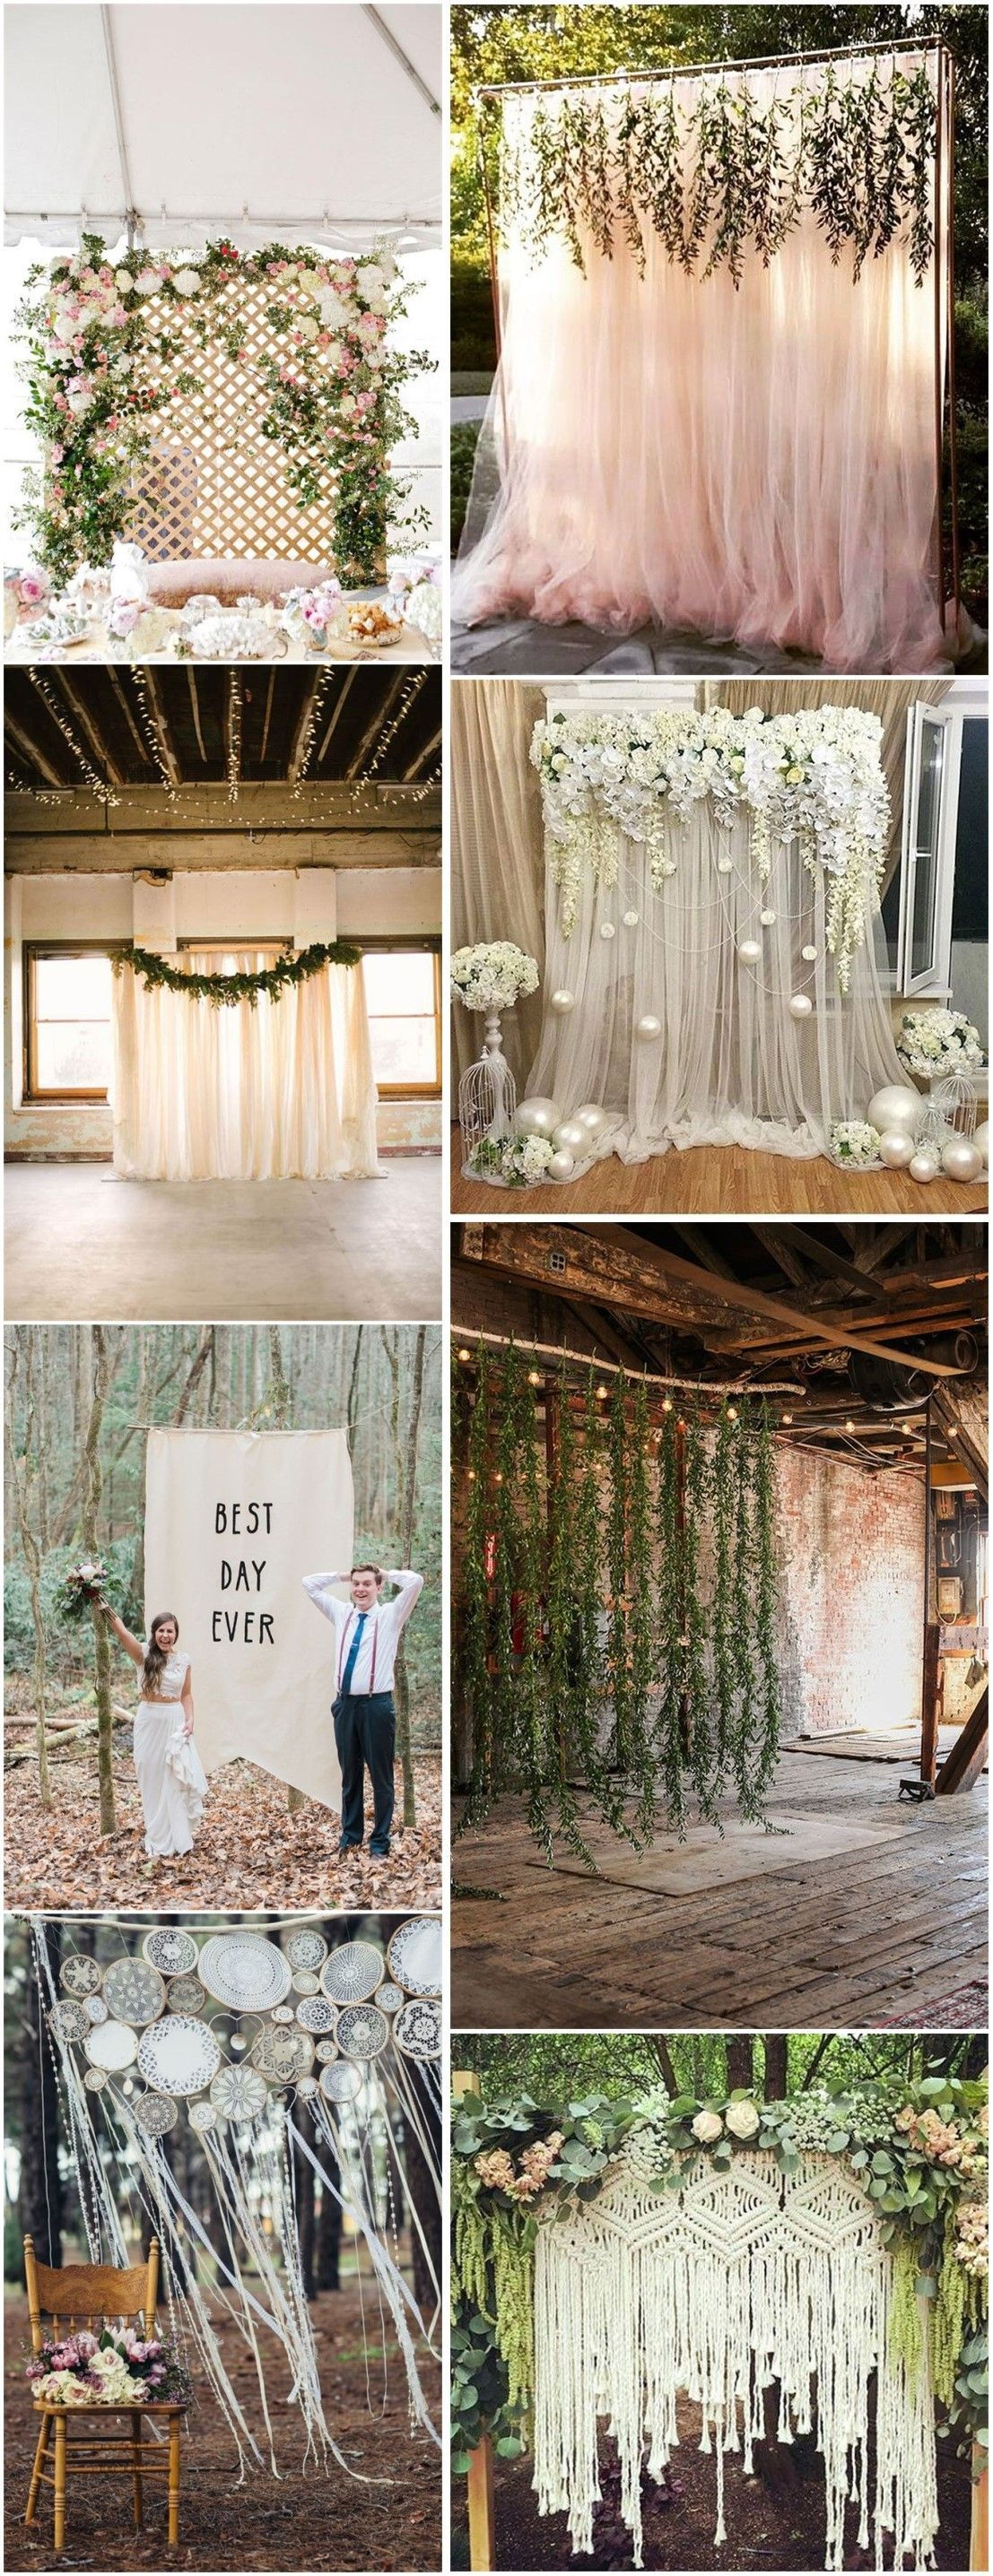 Rustic Weddings » 30 Unique and Breathtaking Wedding Backdrop Ideas » ️ More: www.weddinginclud... Ruby Lane Vintage